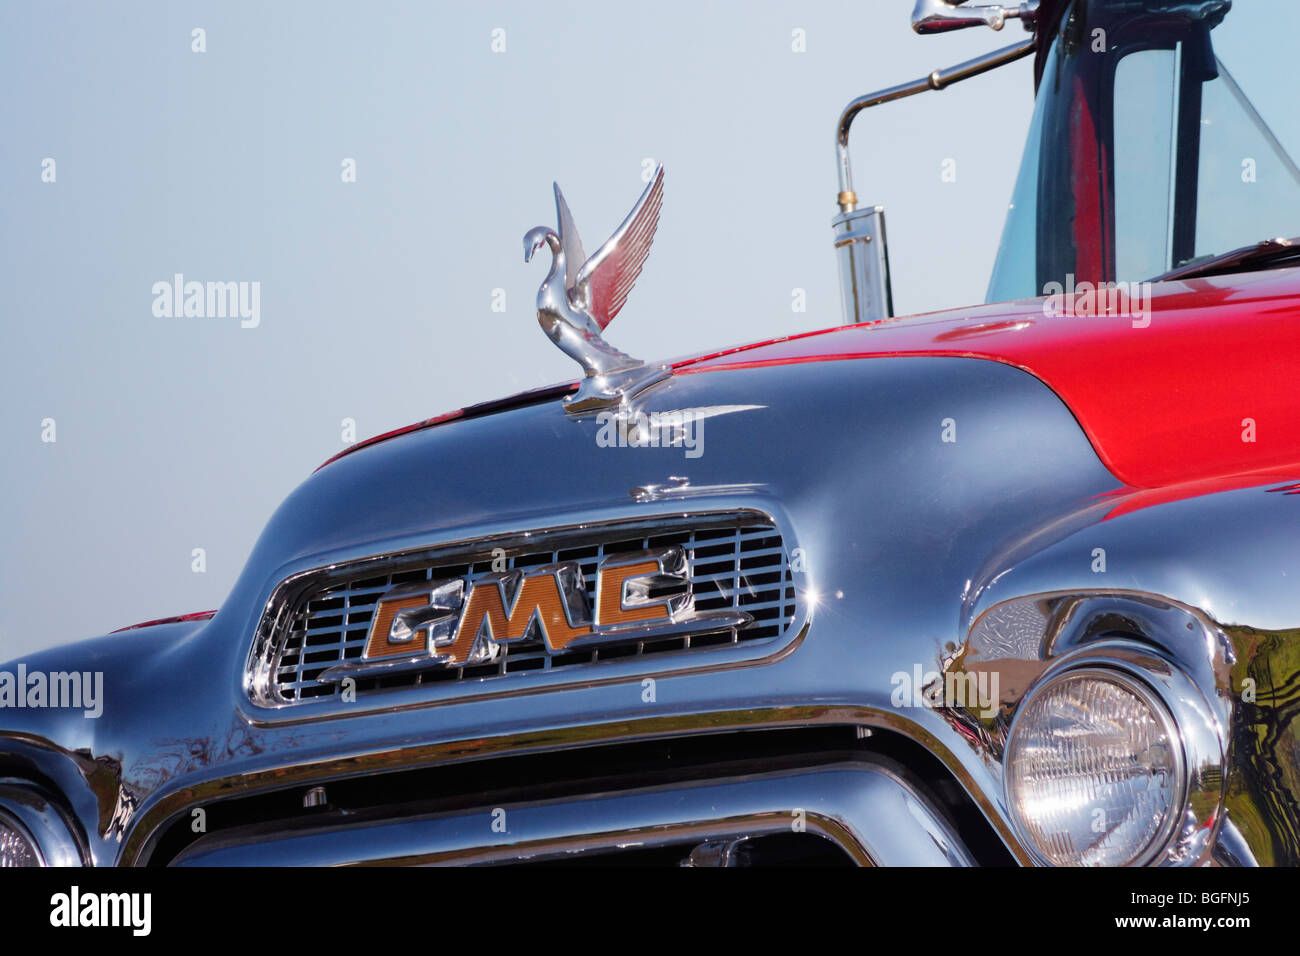 General Motors Truck Vintage High Resolution Stock Photography And Images Alamy